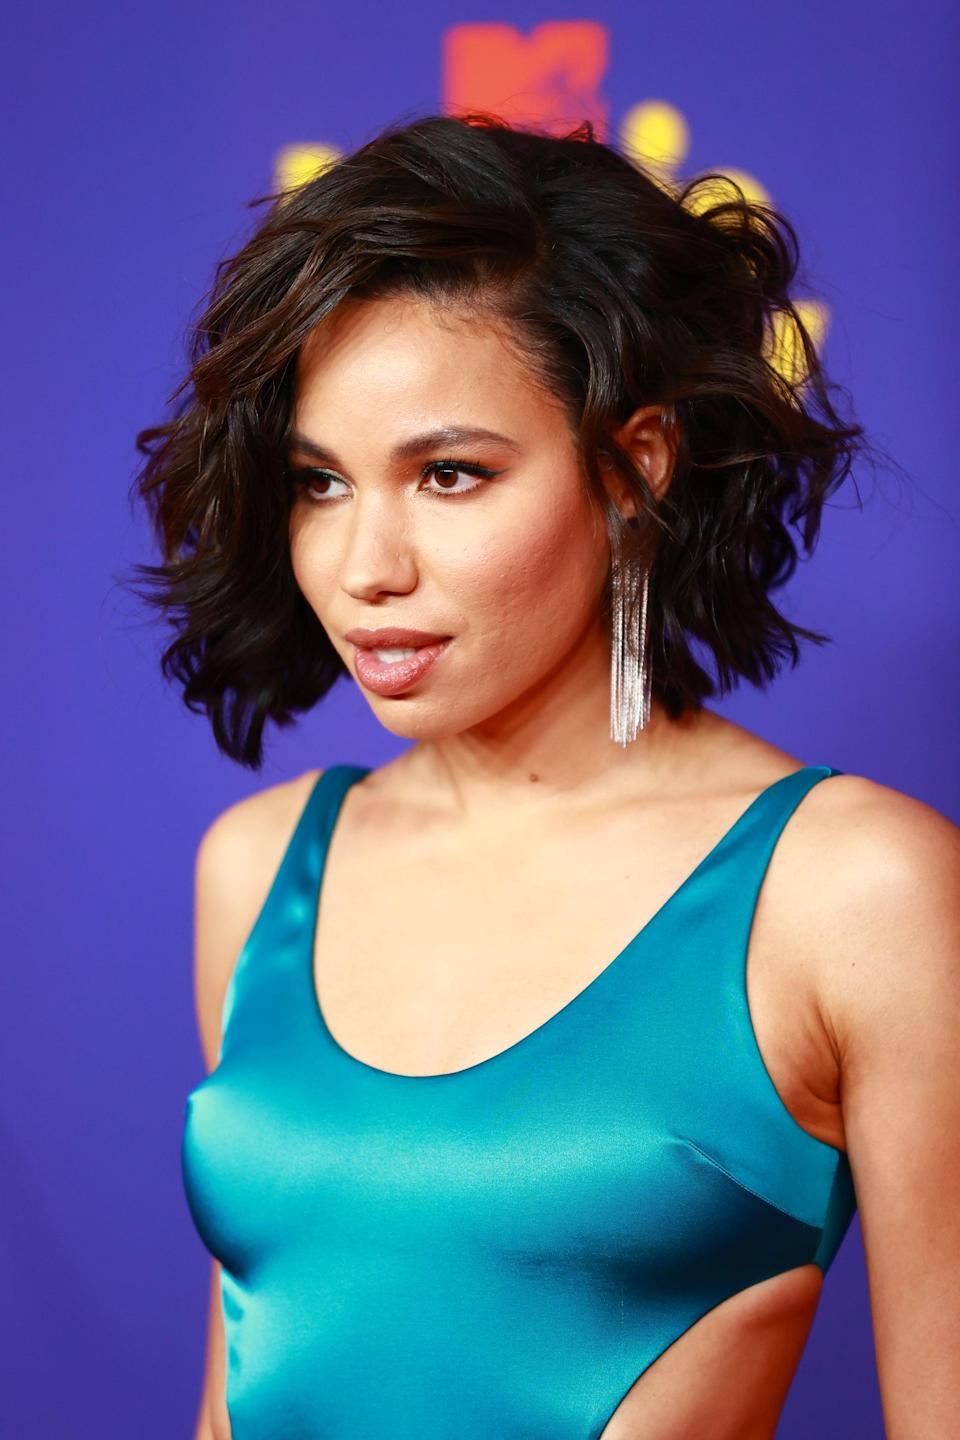 """<p>Jurnee Smollett was serving up major summer hairstyle inspiration with her voluminous, wavy bob haircut by <a href=""""https://www.instagram.com/kiyahwright1/"""" class=""""link rapid-noclick-resp"""" rel=""""nofollow noopener"""" target=""""_blank"""" data-ylk=""""slk:Kiyah Wright"""">Kiyah Wright</a>. Her makeup also featured a small blue wing to match her outfit by <a href=""""https://www.instagram.com/emilychengmakeup/"""" class=""""link rapid-noclick-resp"""" rel=""""nofollow noopener"""" target=""""_blank"""" data-ylk=""""slk:Emily Cheng"""">Emily Cheng</a>.</p>"""